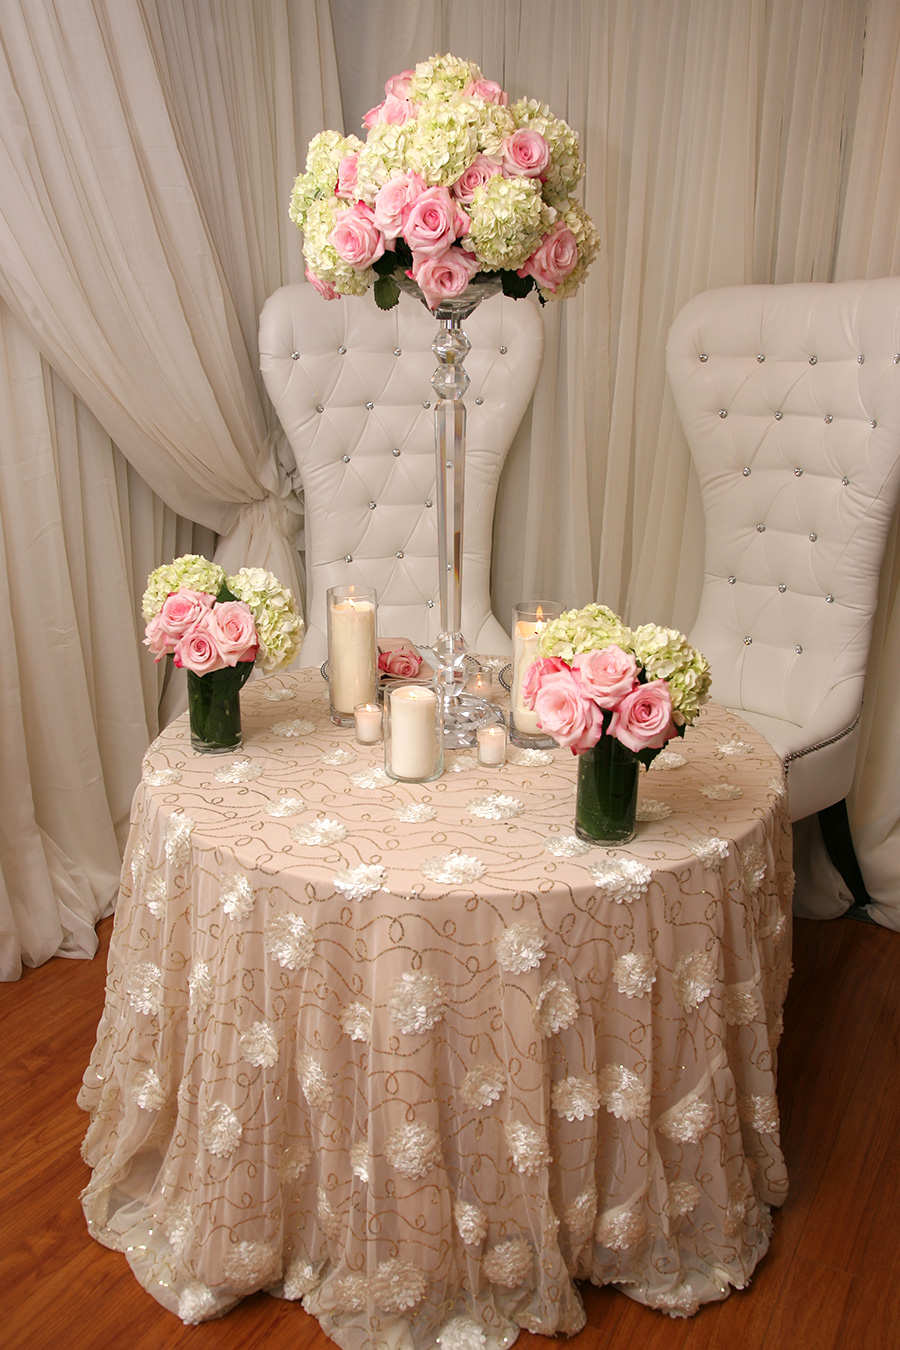 Rosette Overlay Table Cover Ivory Gold Sequins